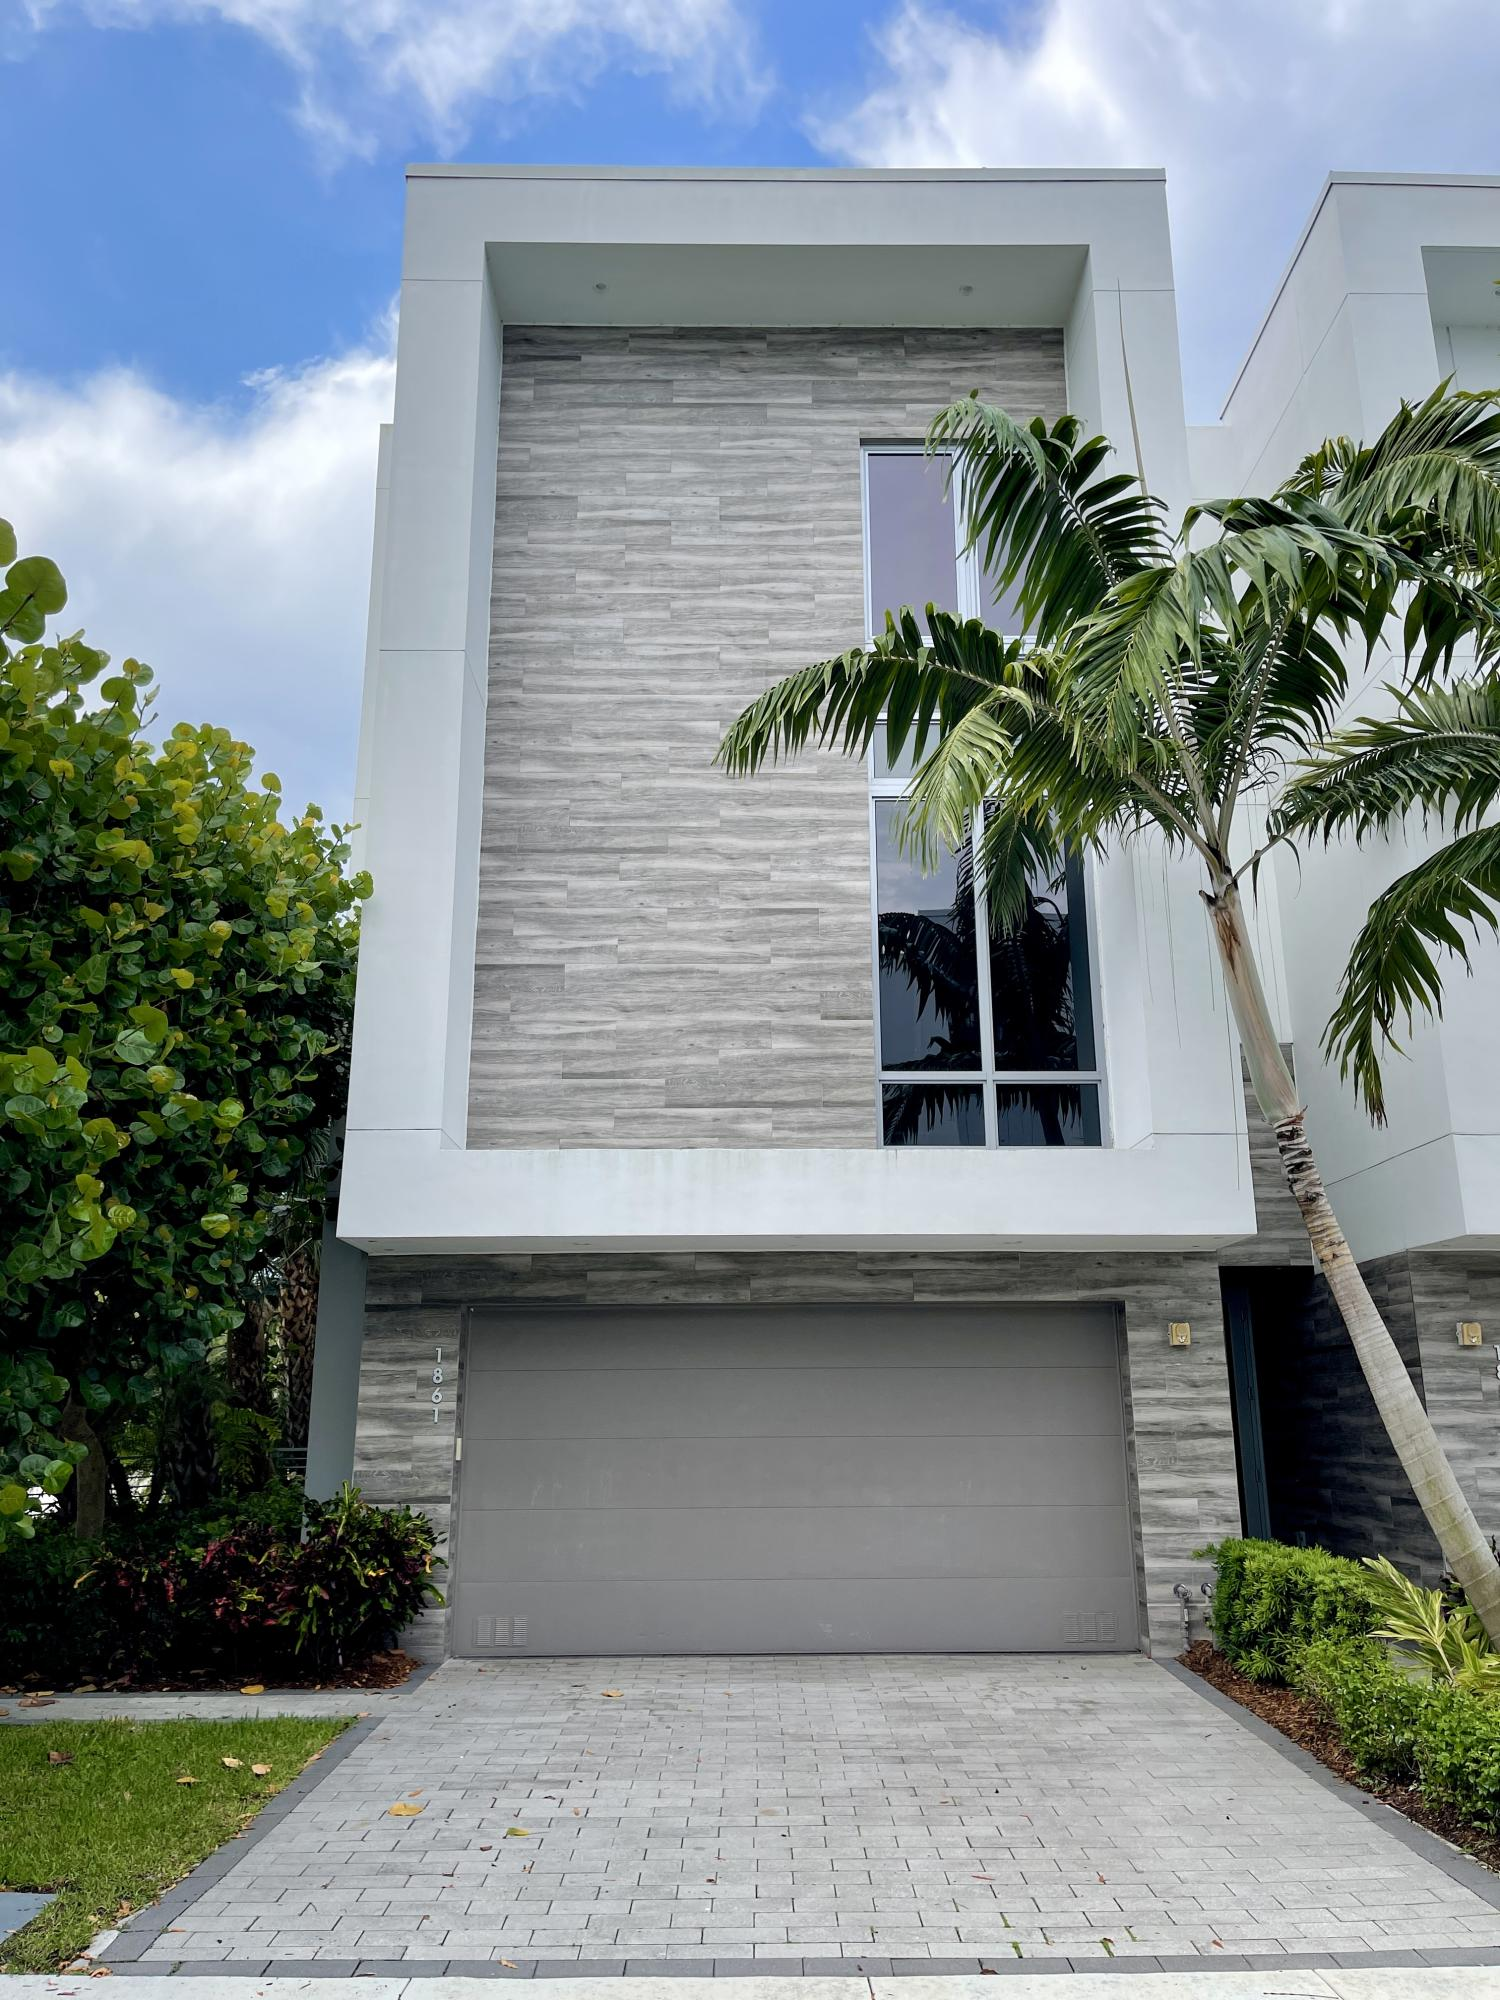 1861 42nd Drive - 3/3 in MODERNE BOCA SPANISH RIVER TOWNHOMES